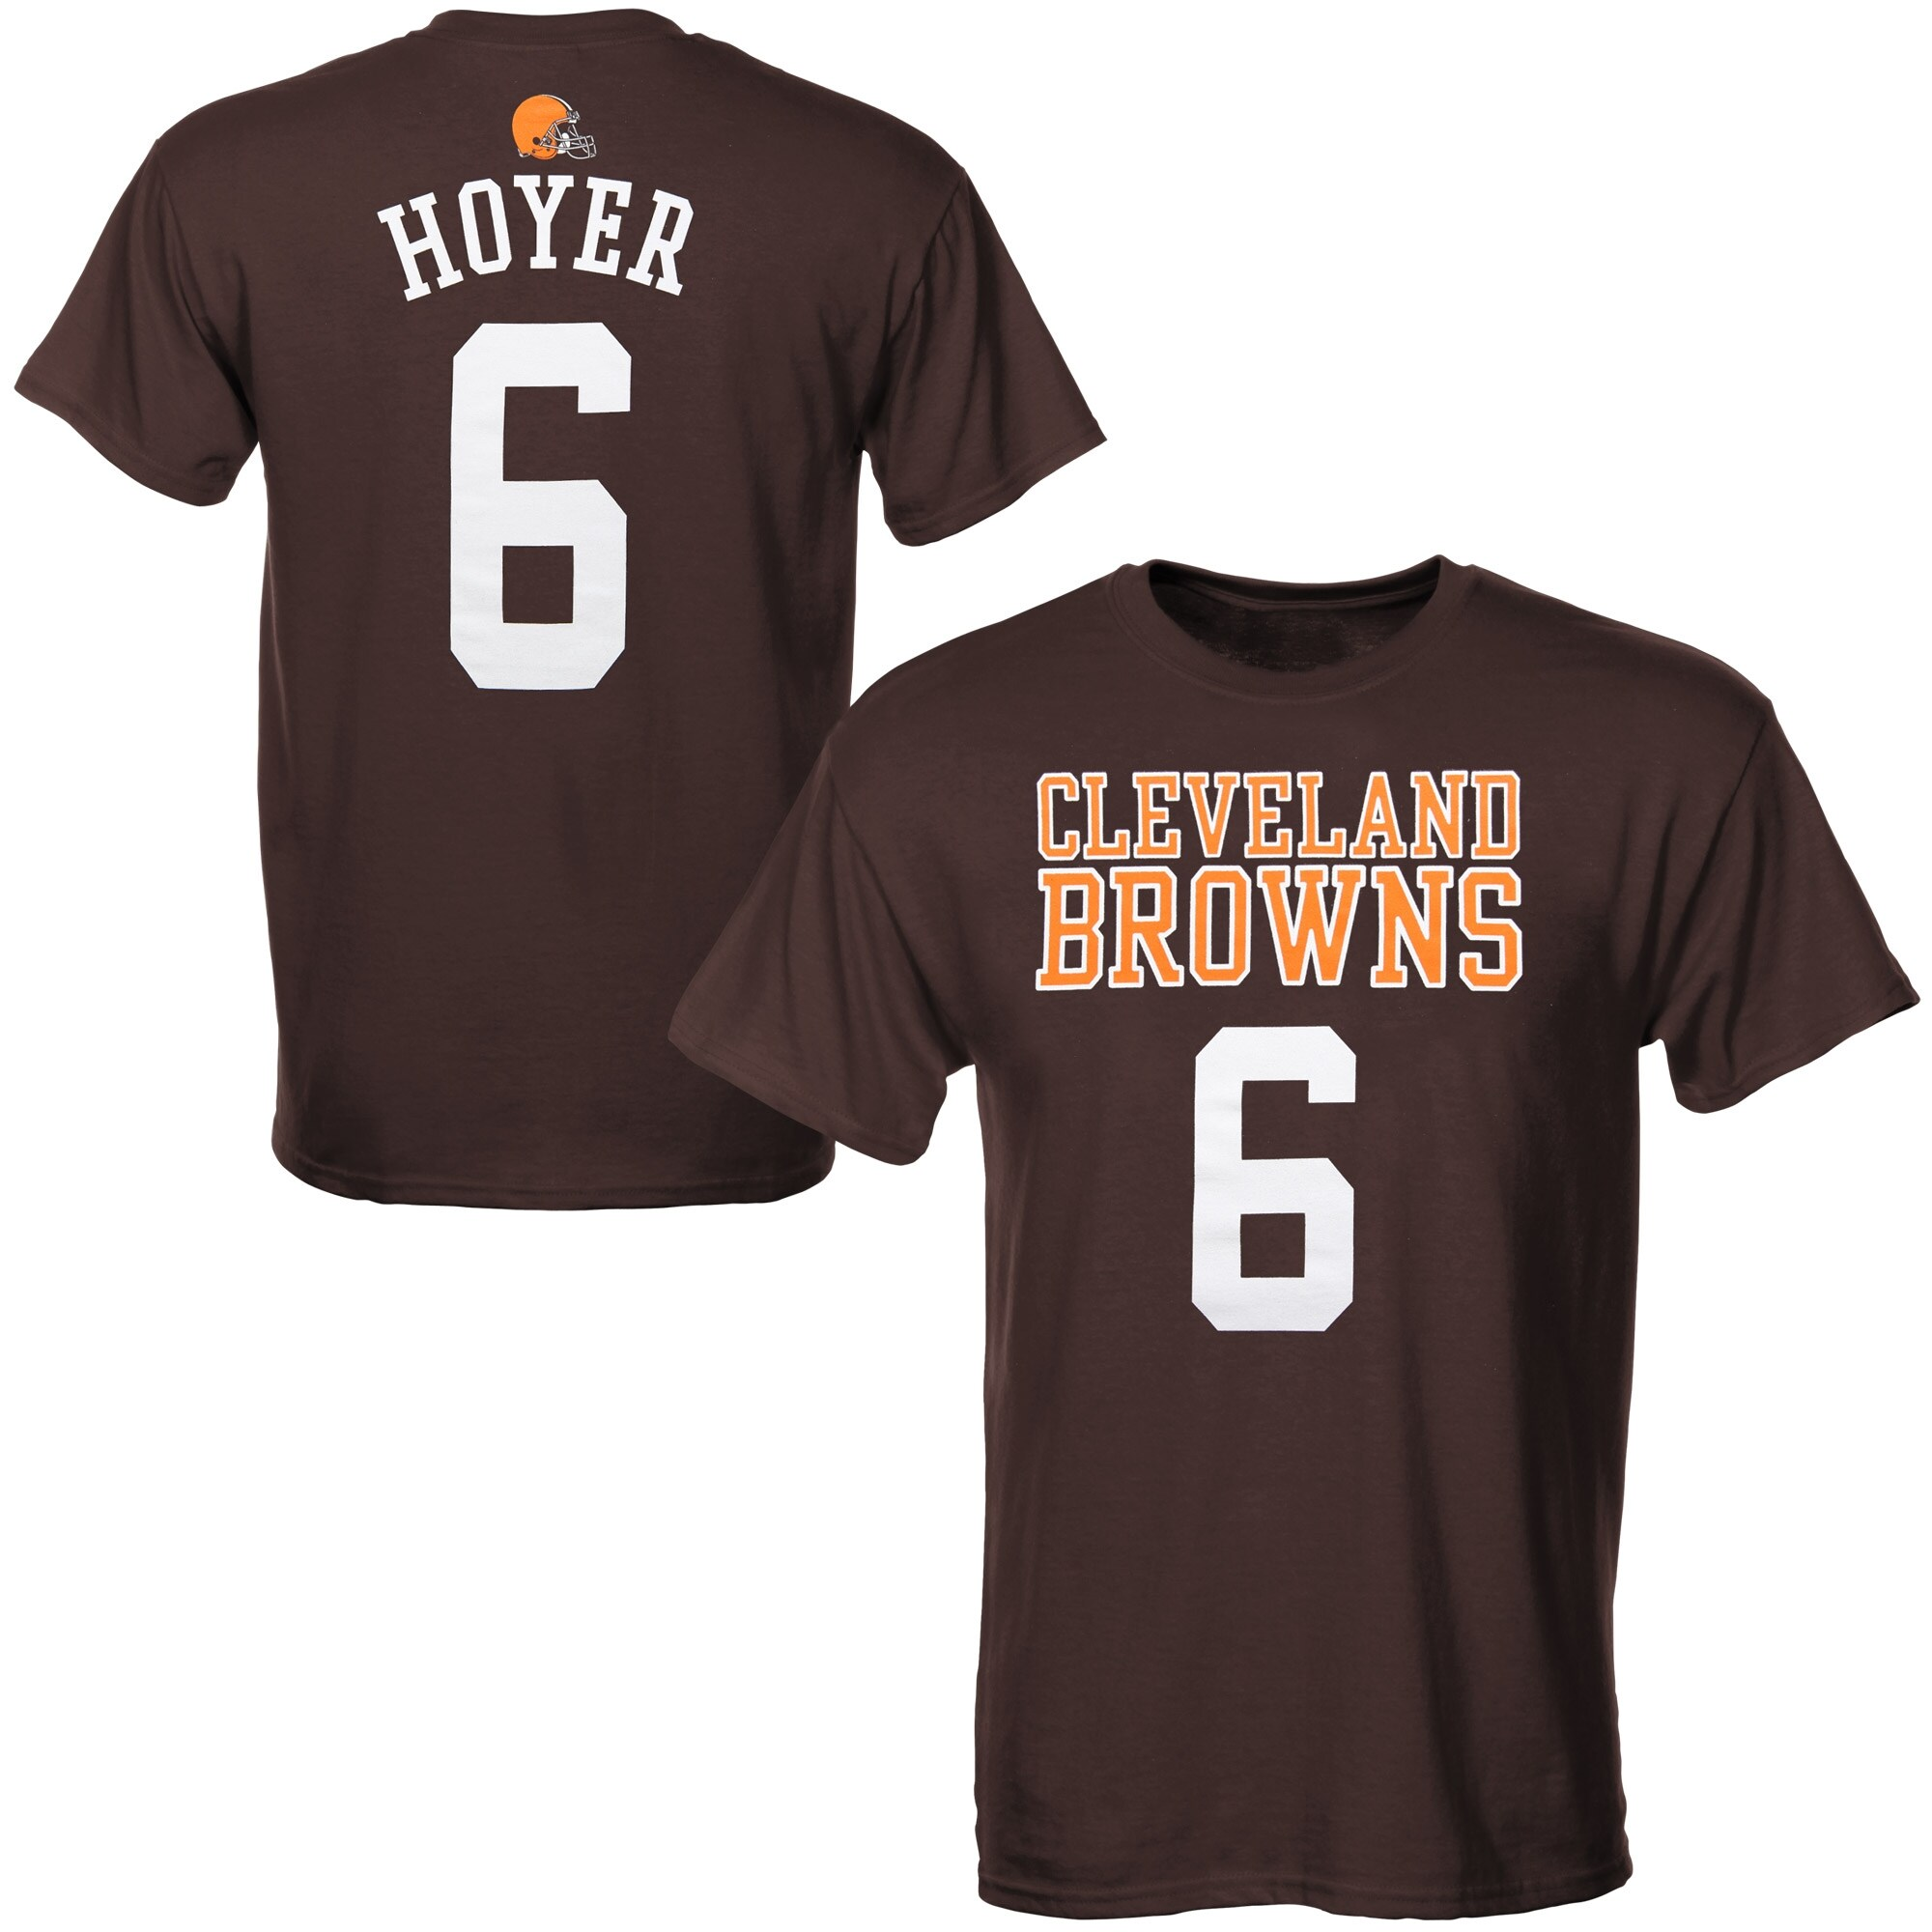 Brian Hoyer Cleveland Browns Historic logo Youth Primary Gear name & Number T-Shirt - Brown